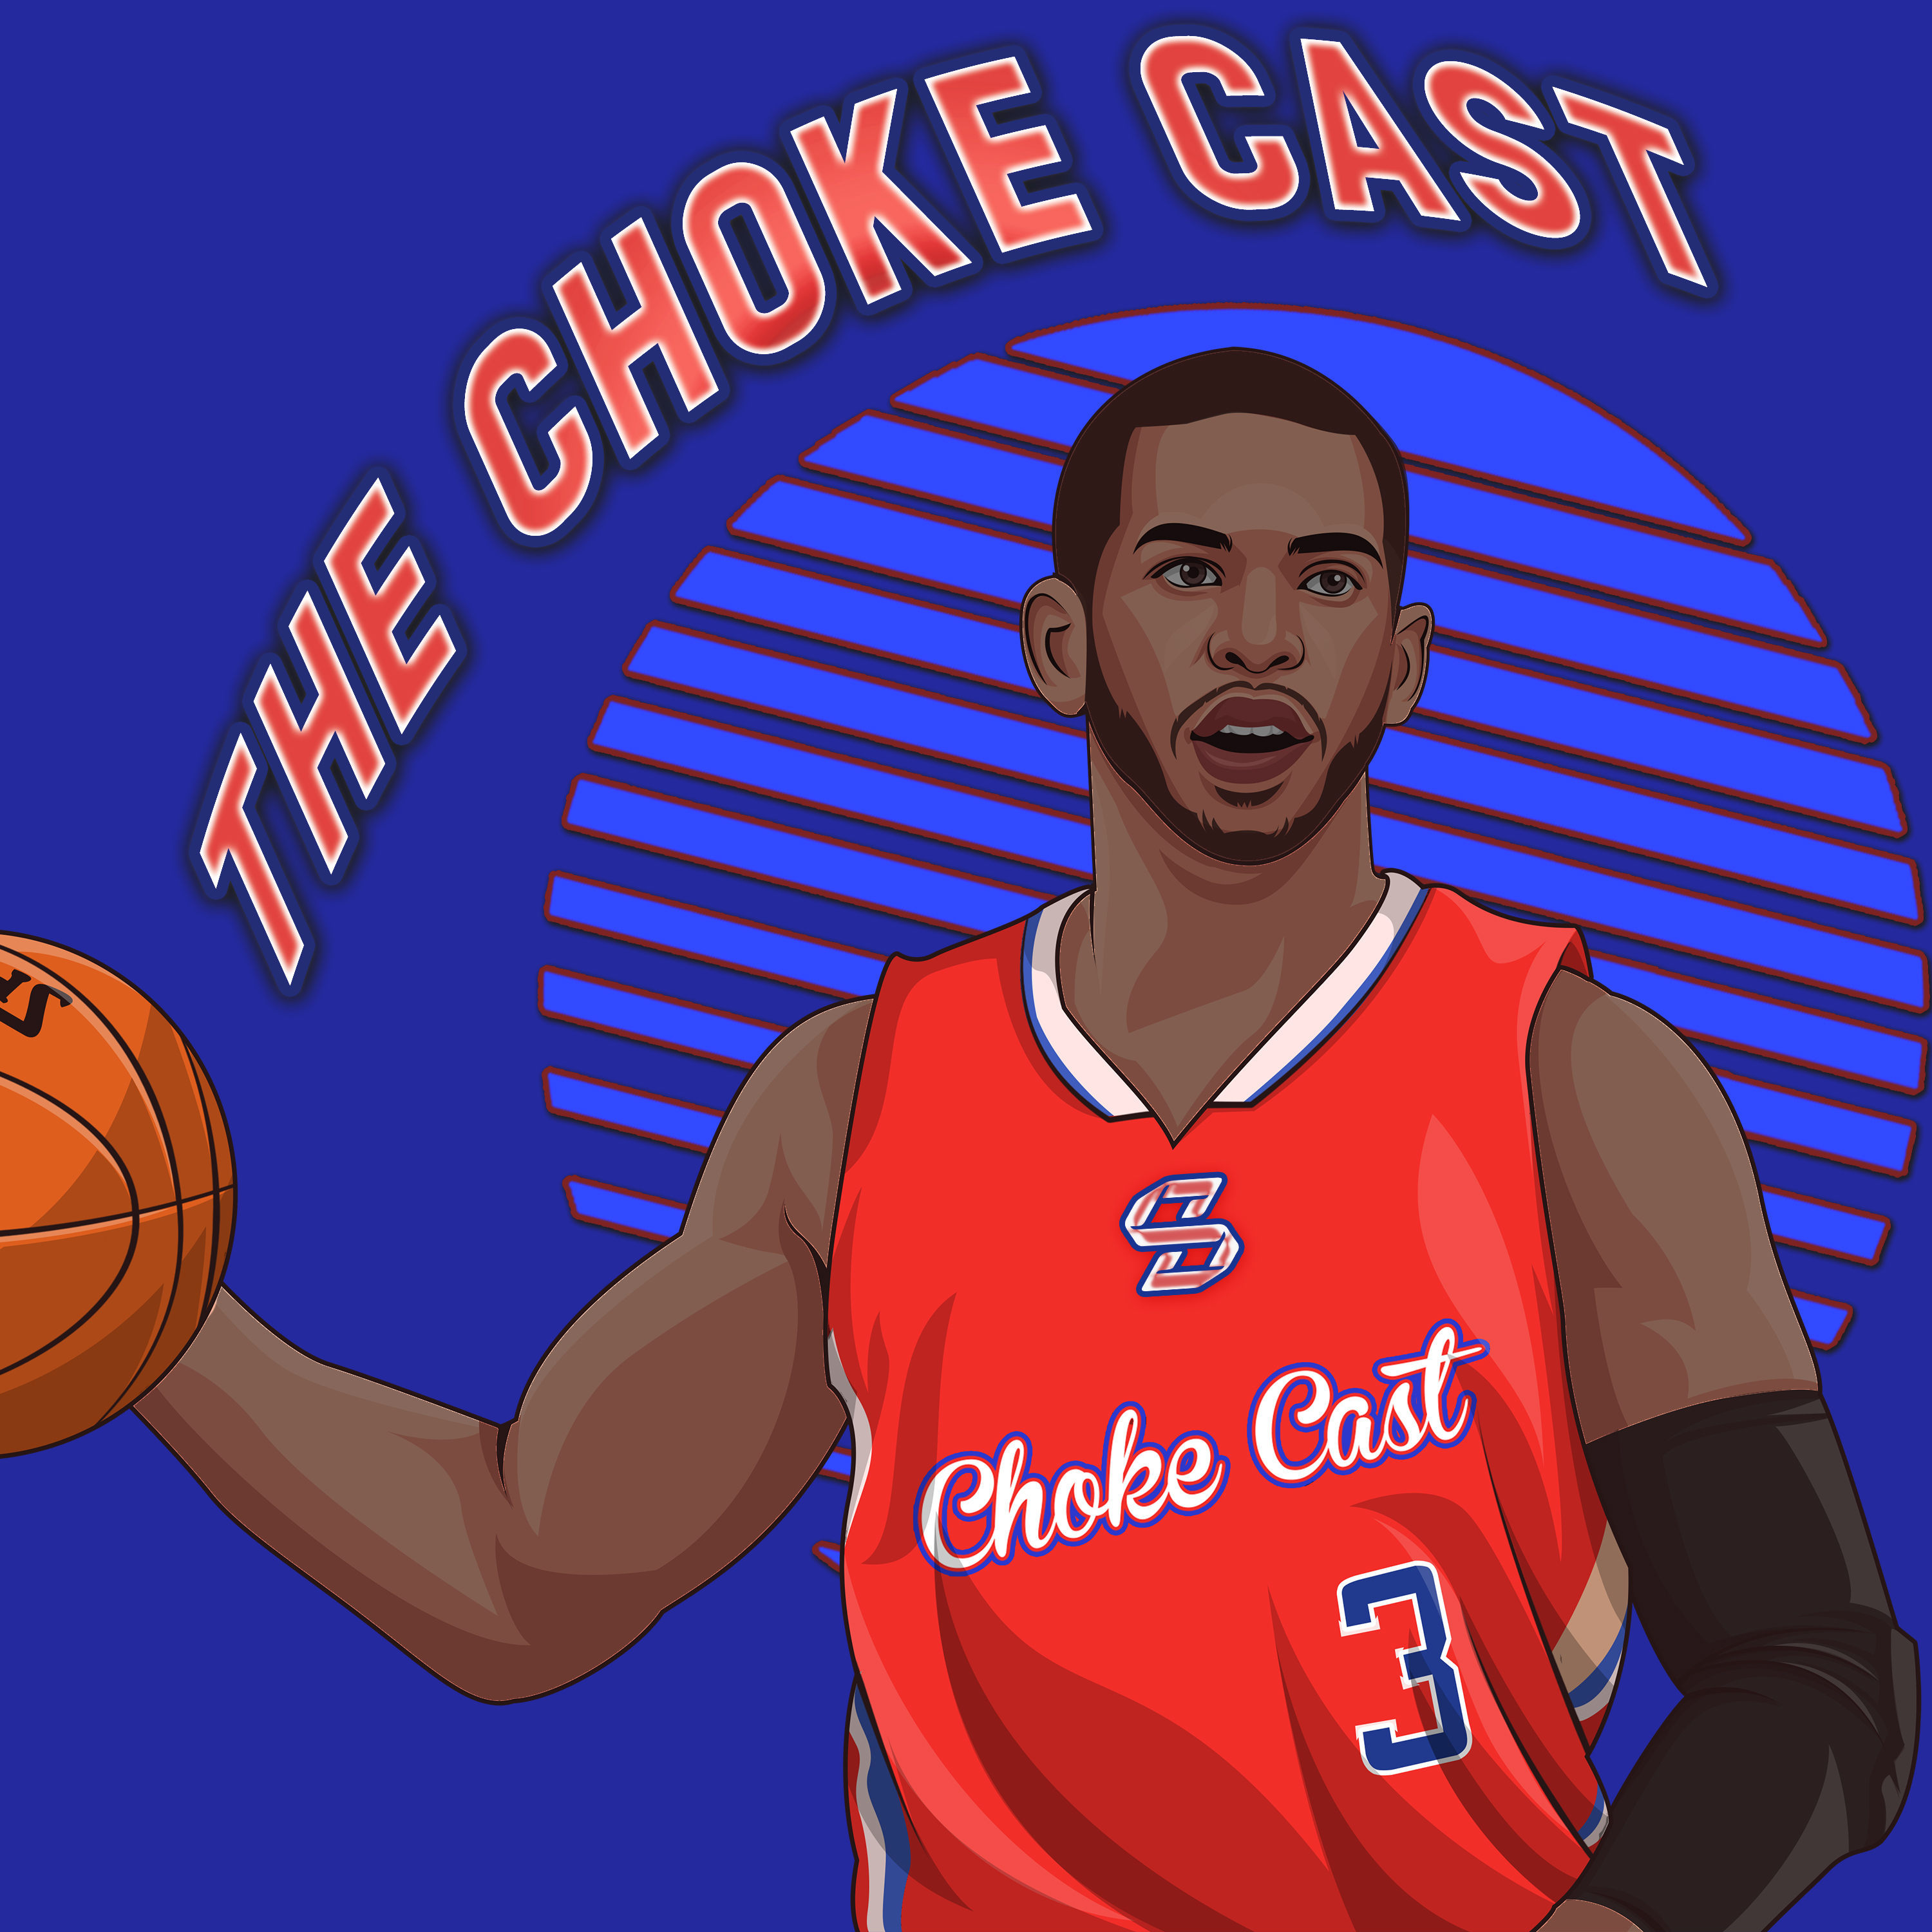 TheChokeCast's podcast show image